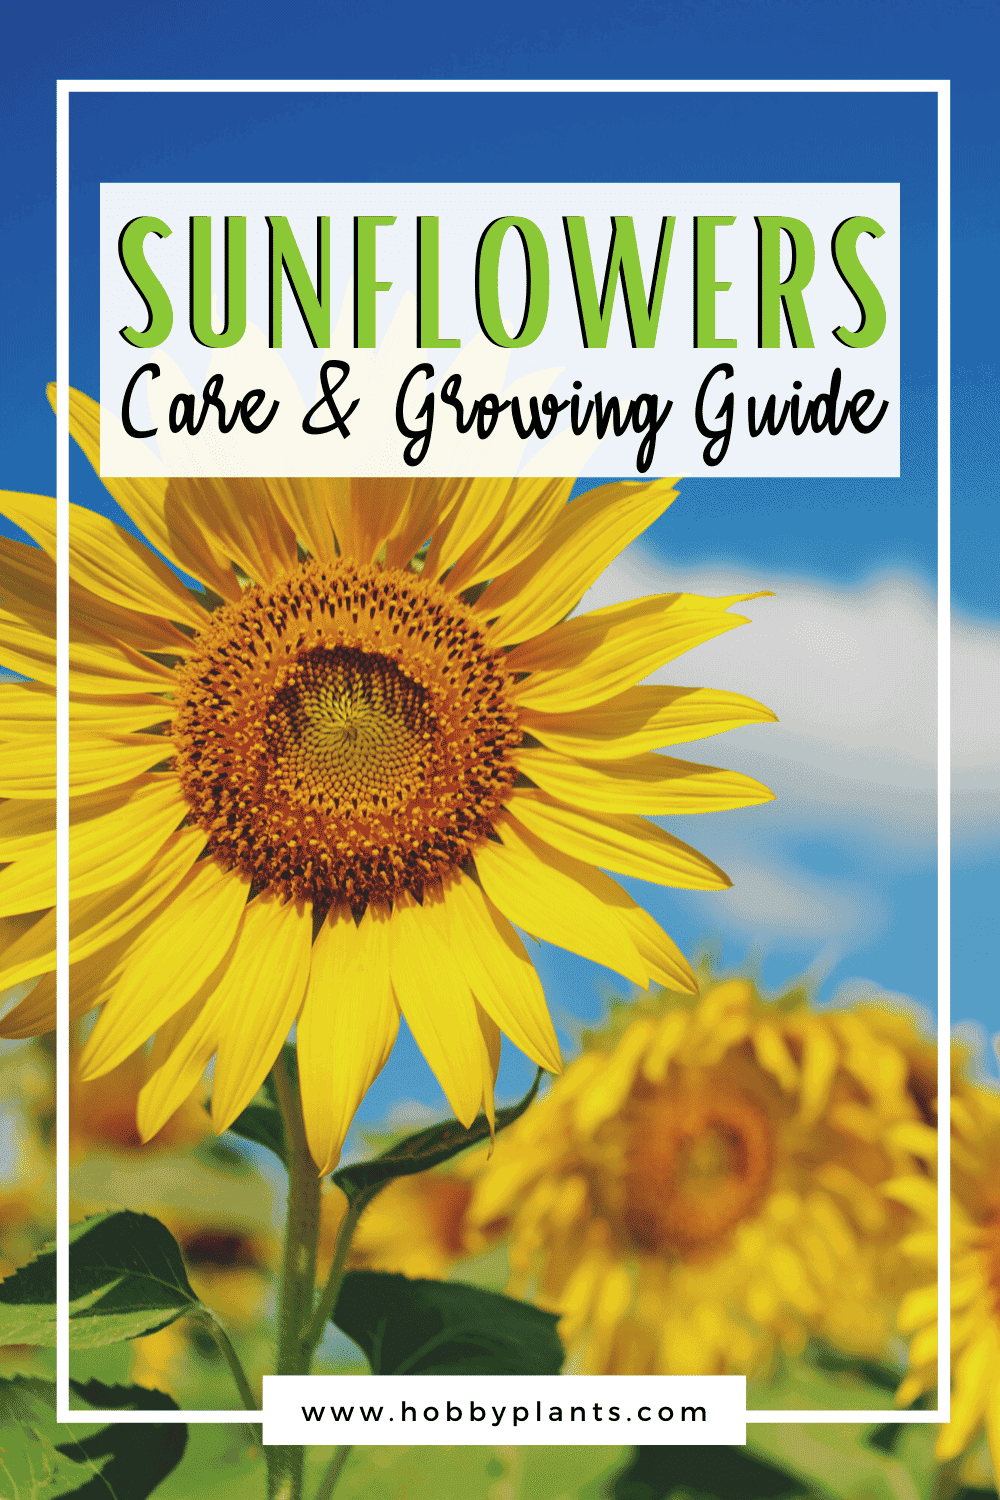 Sunflowers Care & Growing Guide